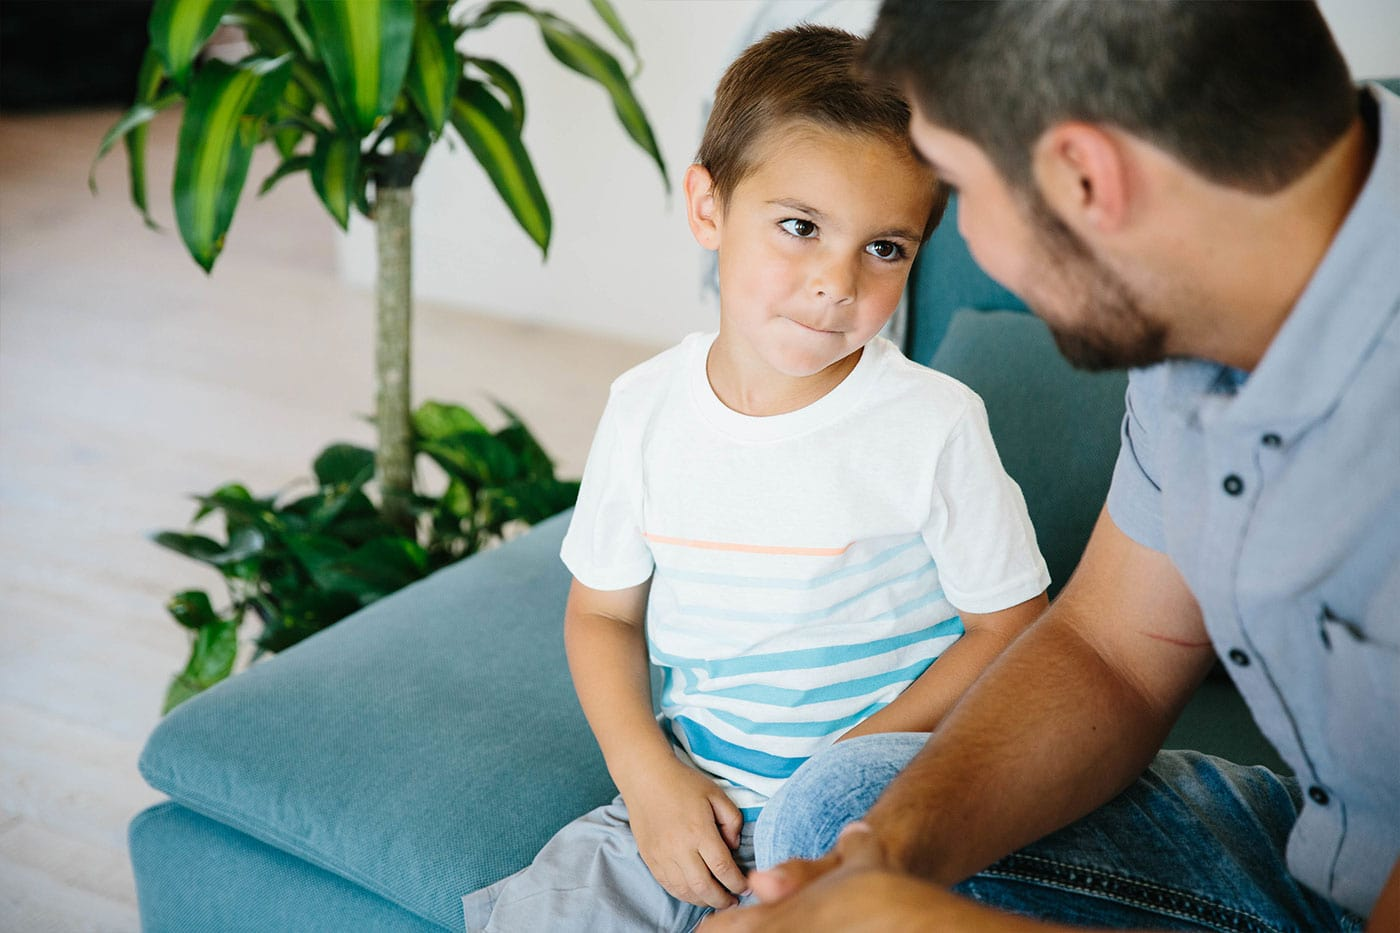 Father and son sitting on the sofa talking. The son has a mischievous look on his face but looking intently at his father.